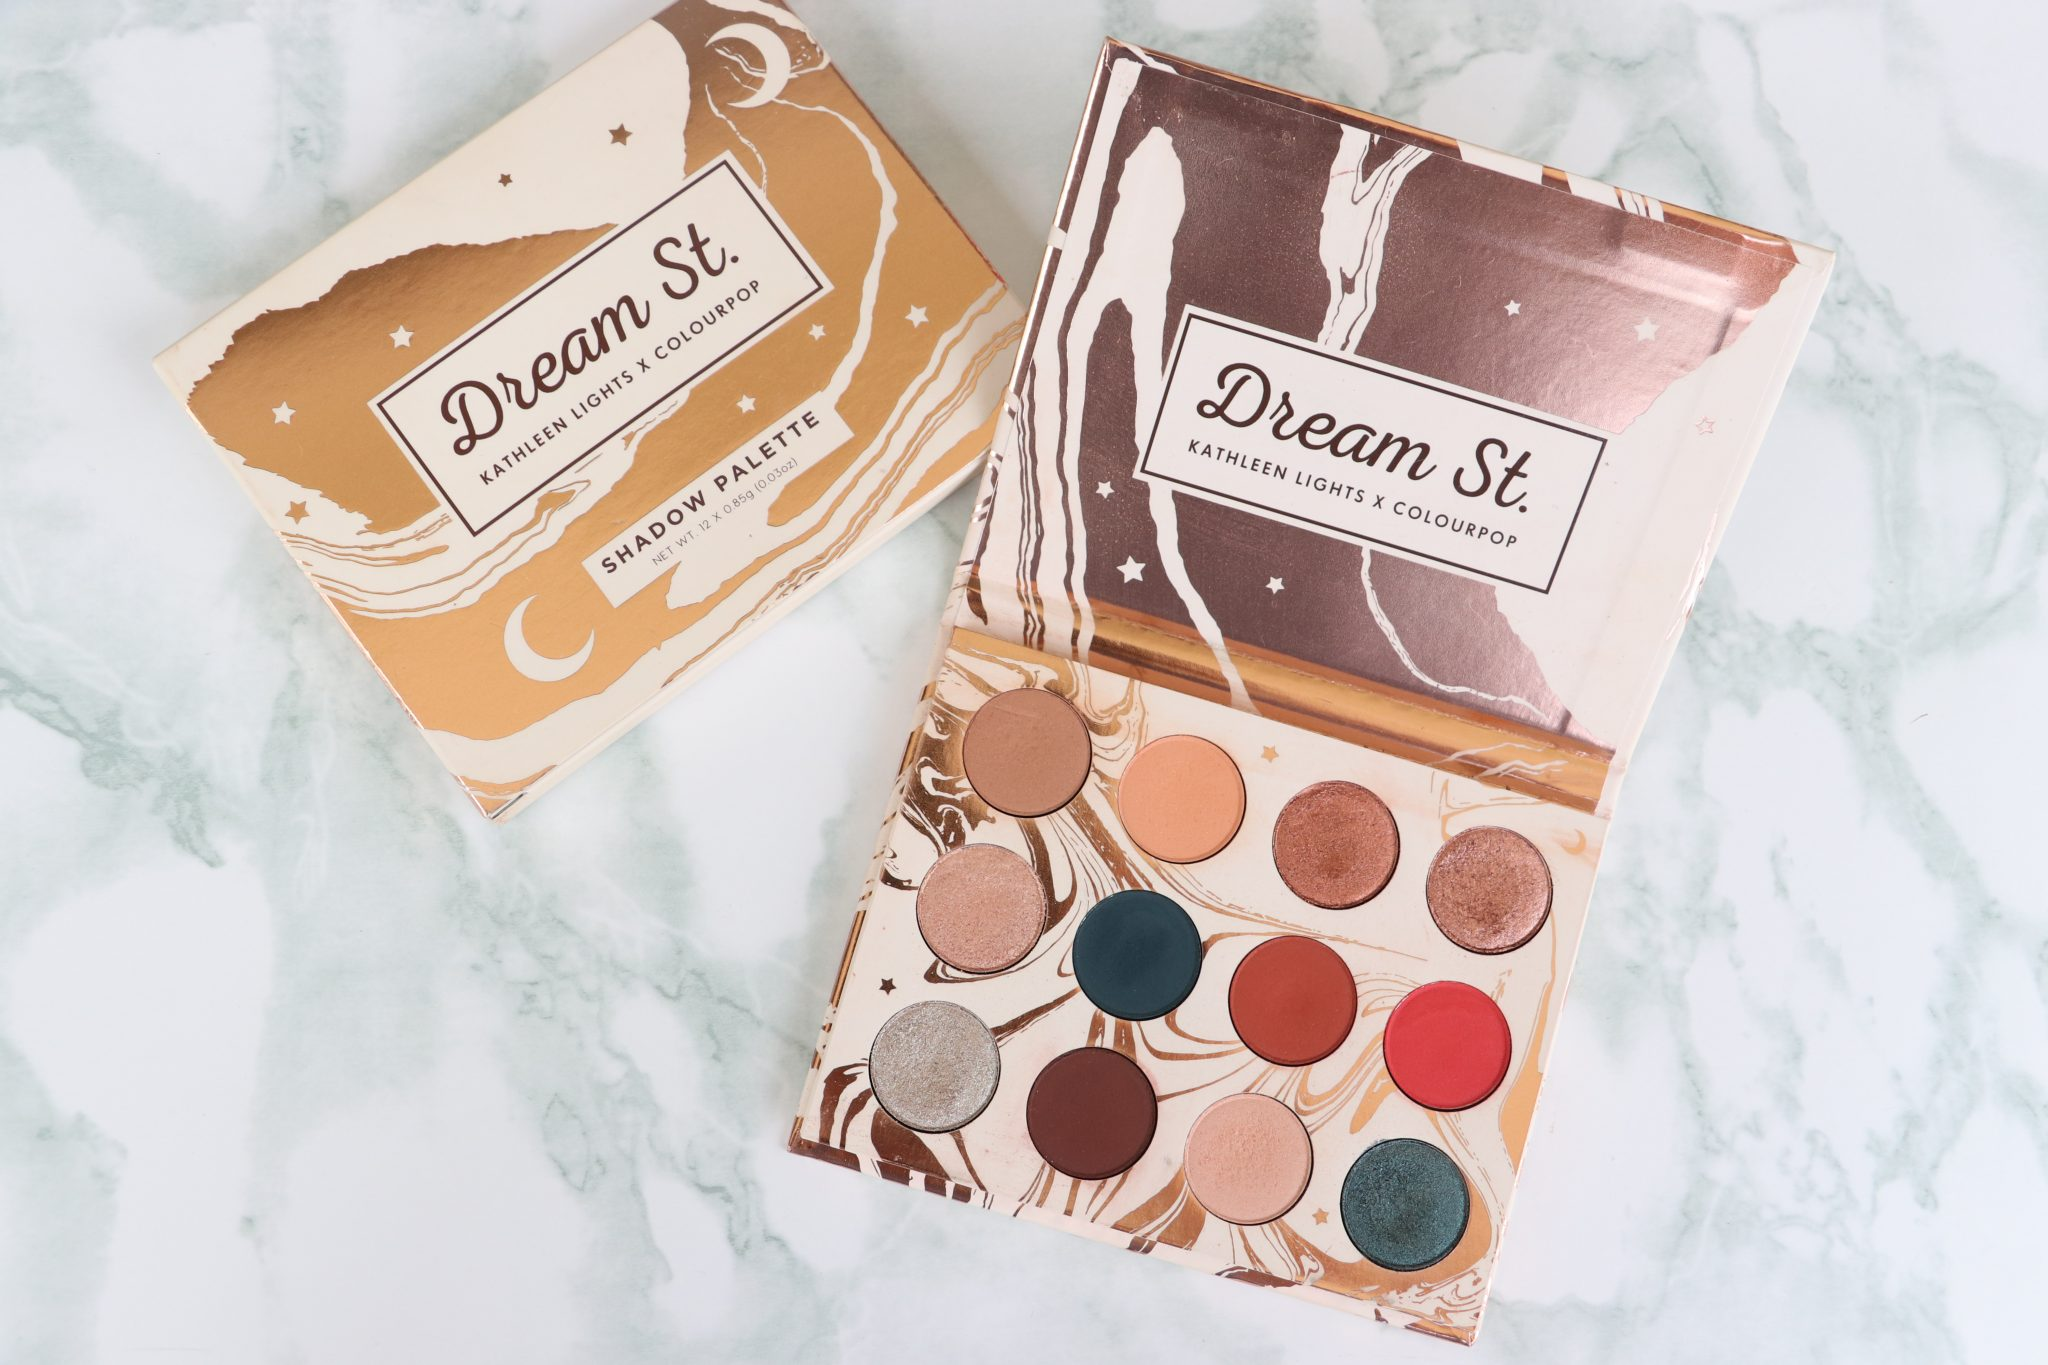 Colourpop Dream St - slayuniqueness